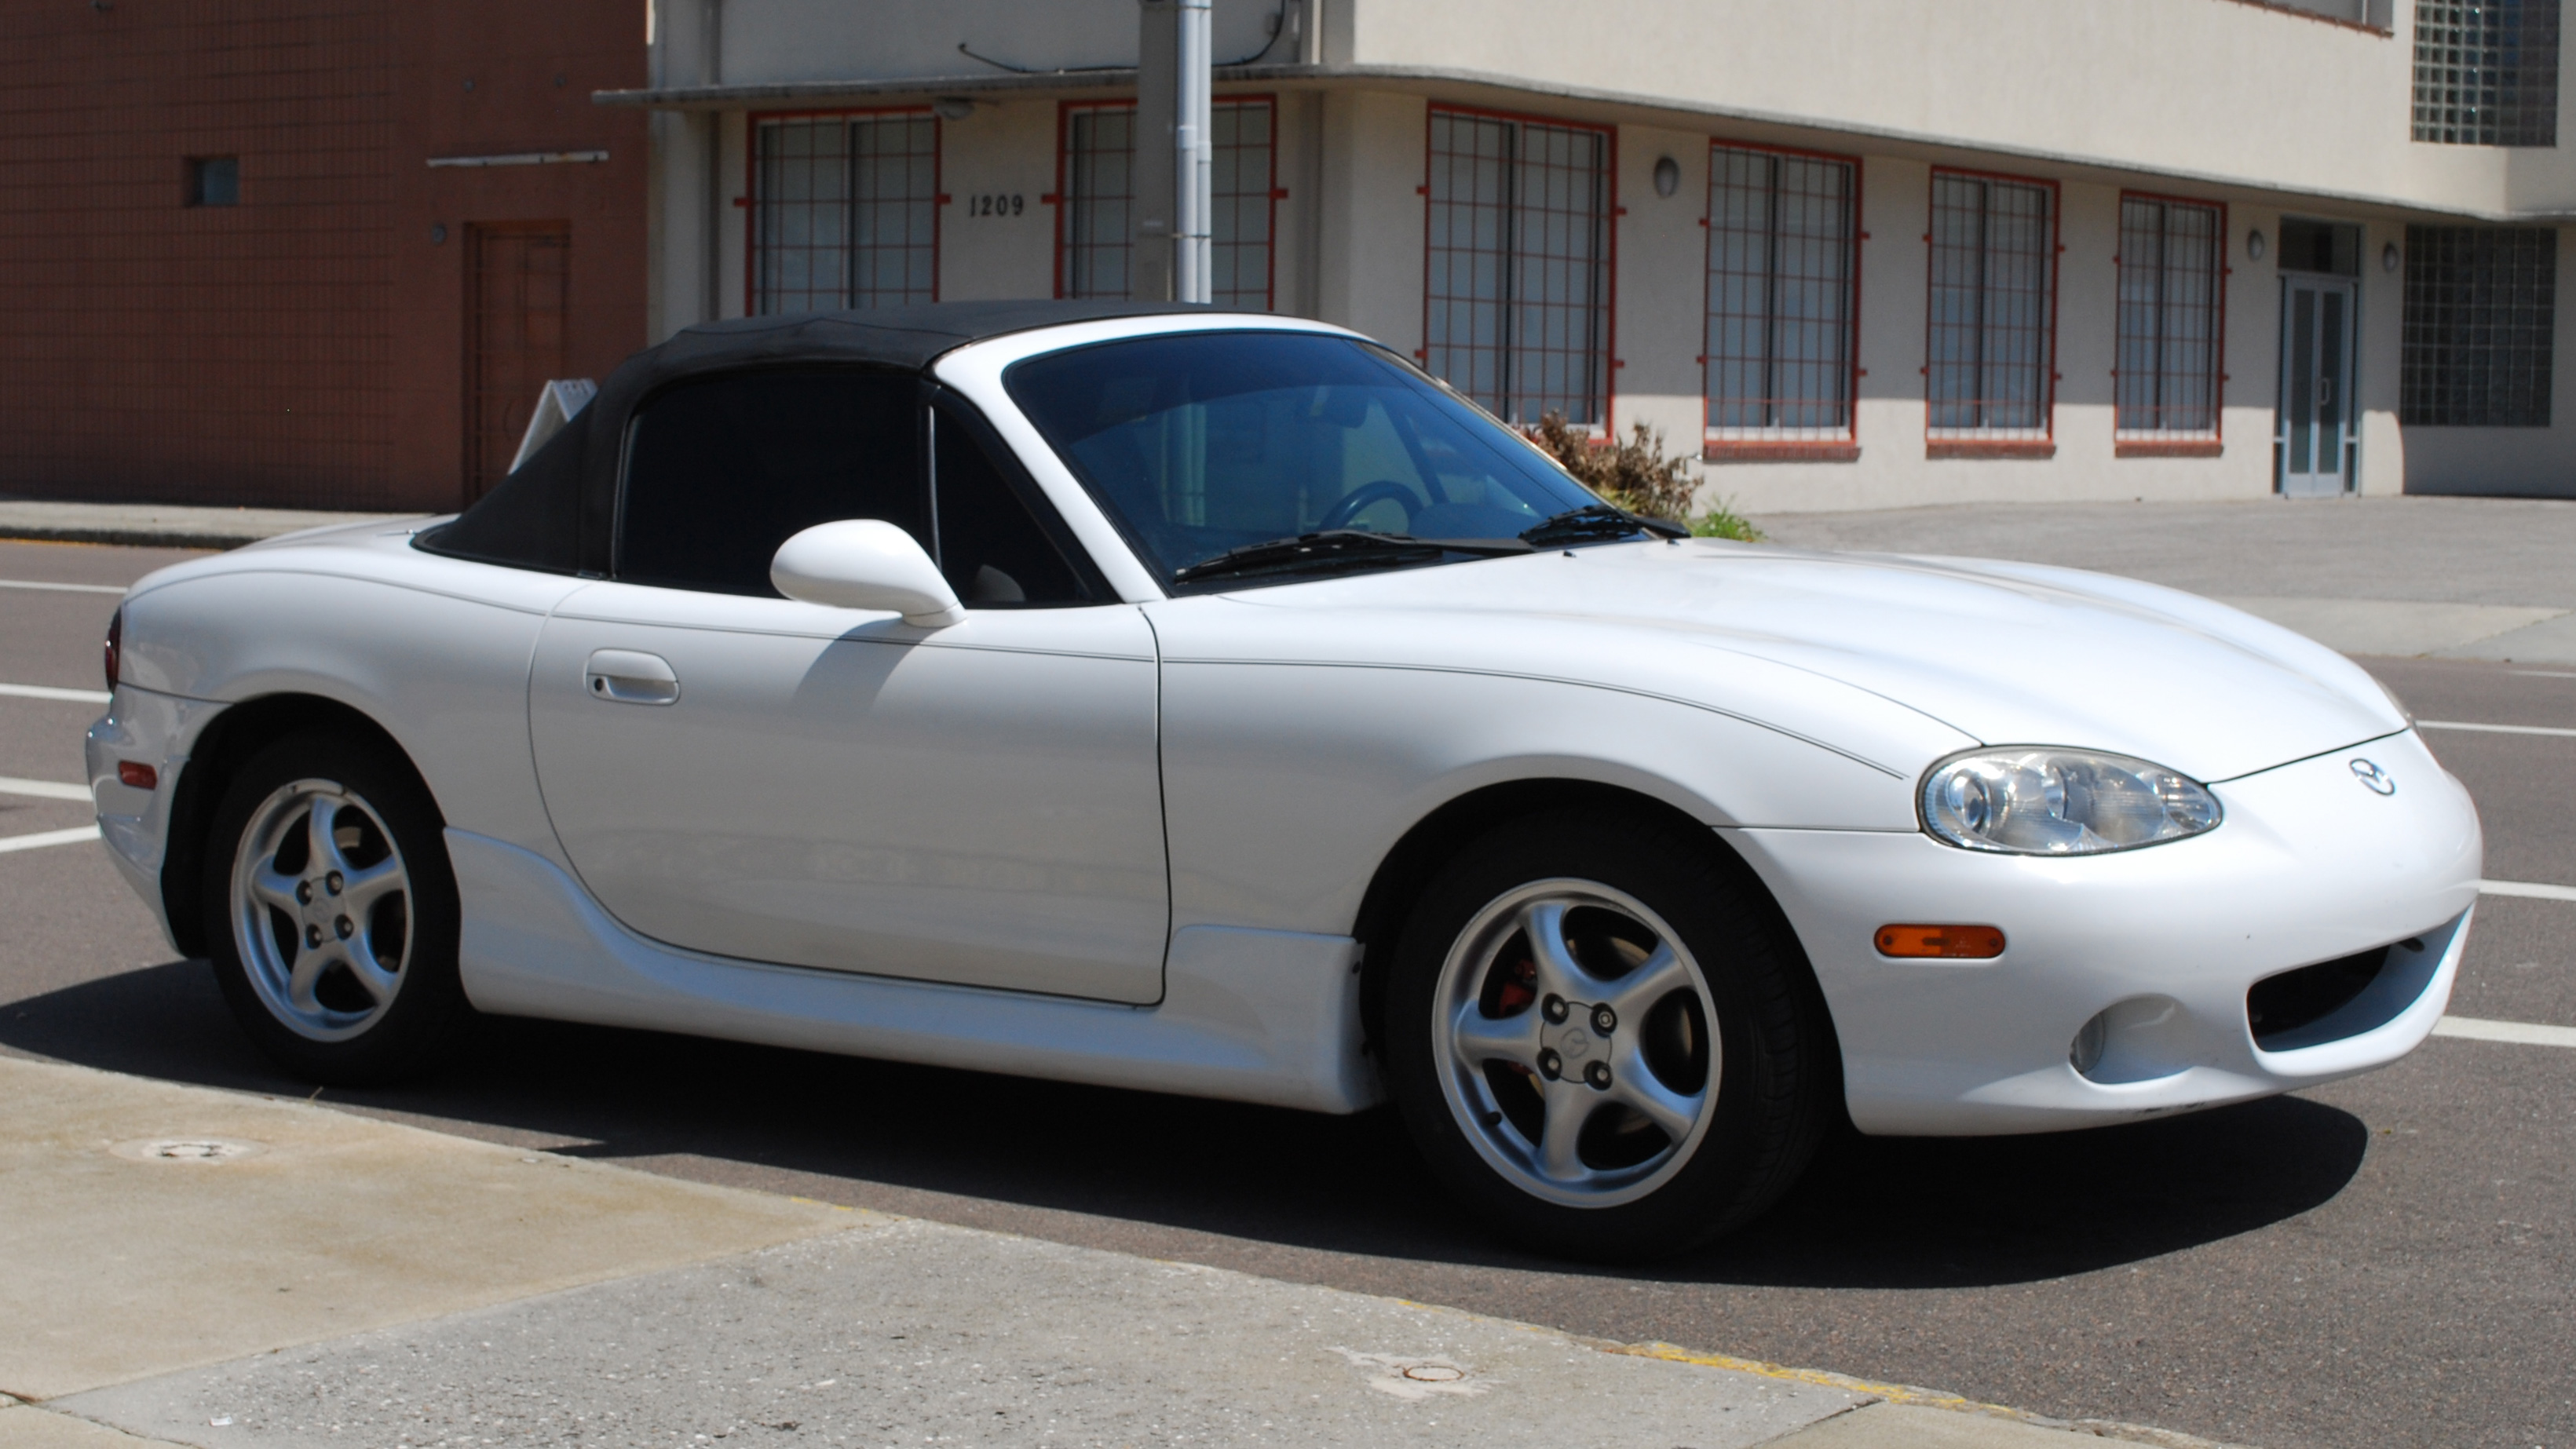 Mazda MX-5 (NB) - Wikipedia